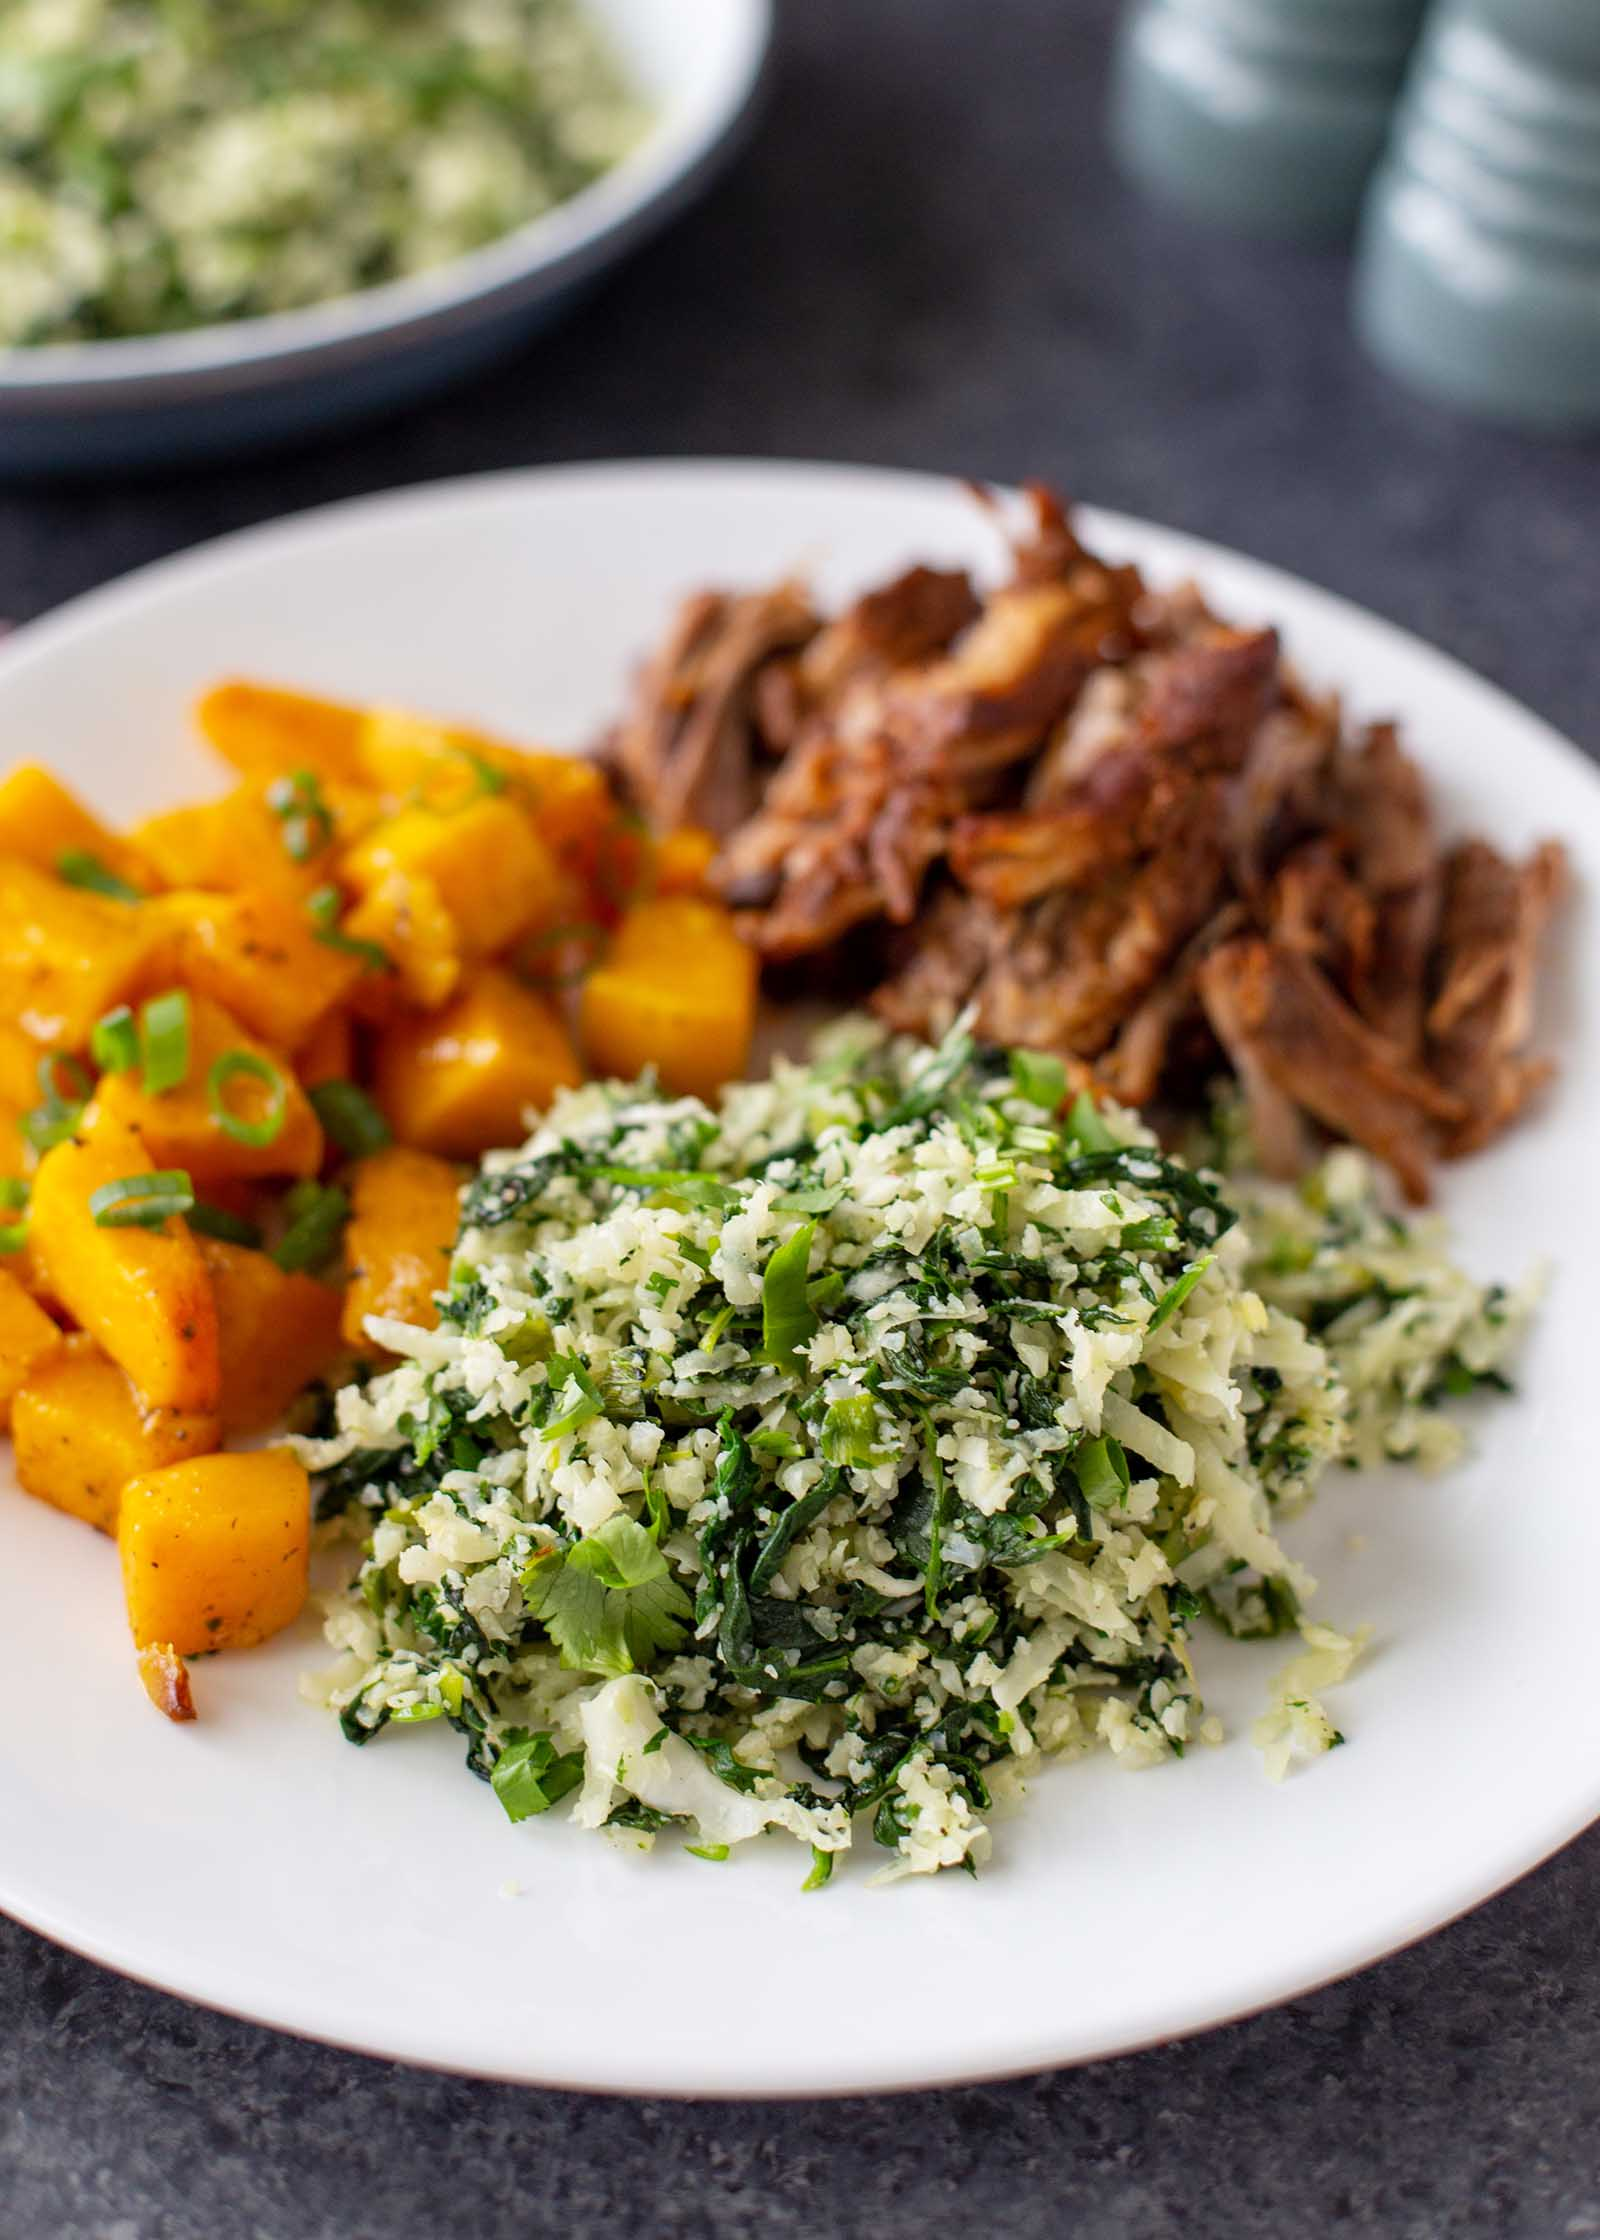 Close up view of a white plate on a slate background. The plate has vegan green cauliflower rice in focus. Roasted butternut squash and shredded pork are also on the plate. A partial view of a bowl of green cauliflower rice is in the upper left. Teal salt and pepper shakers are in the upper right.